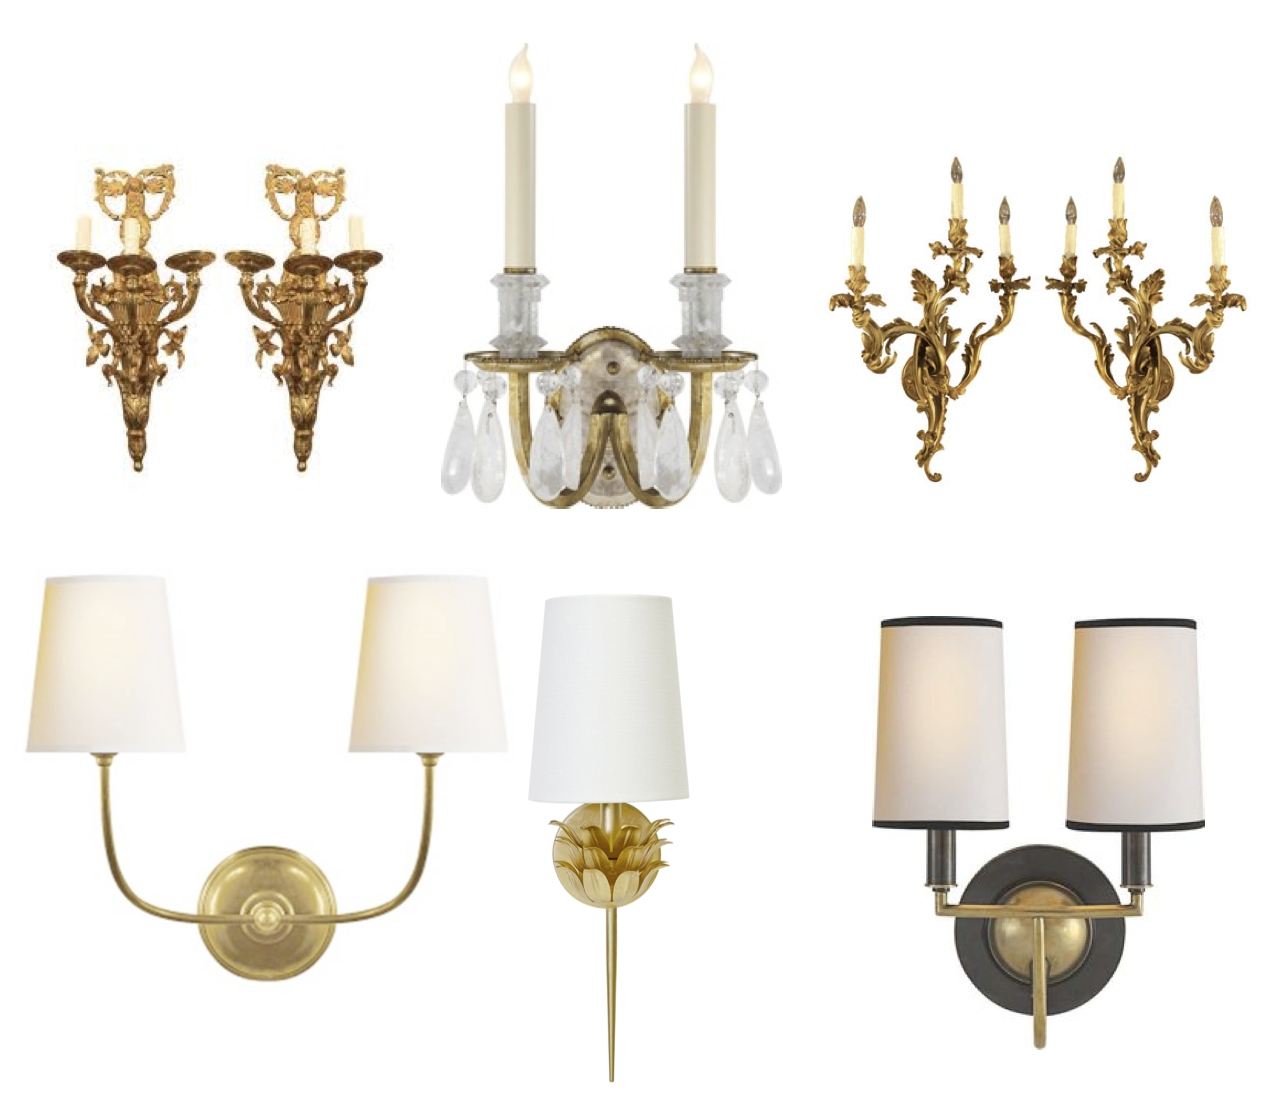 Most Popular Sconces: Wall Mounted Lighting Of Distinctive Style (View 10 of 20)